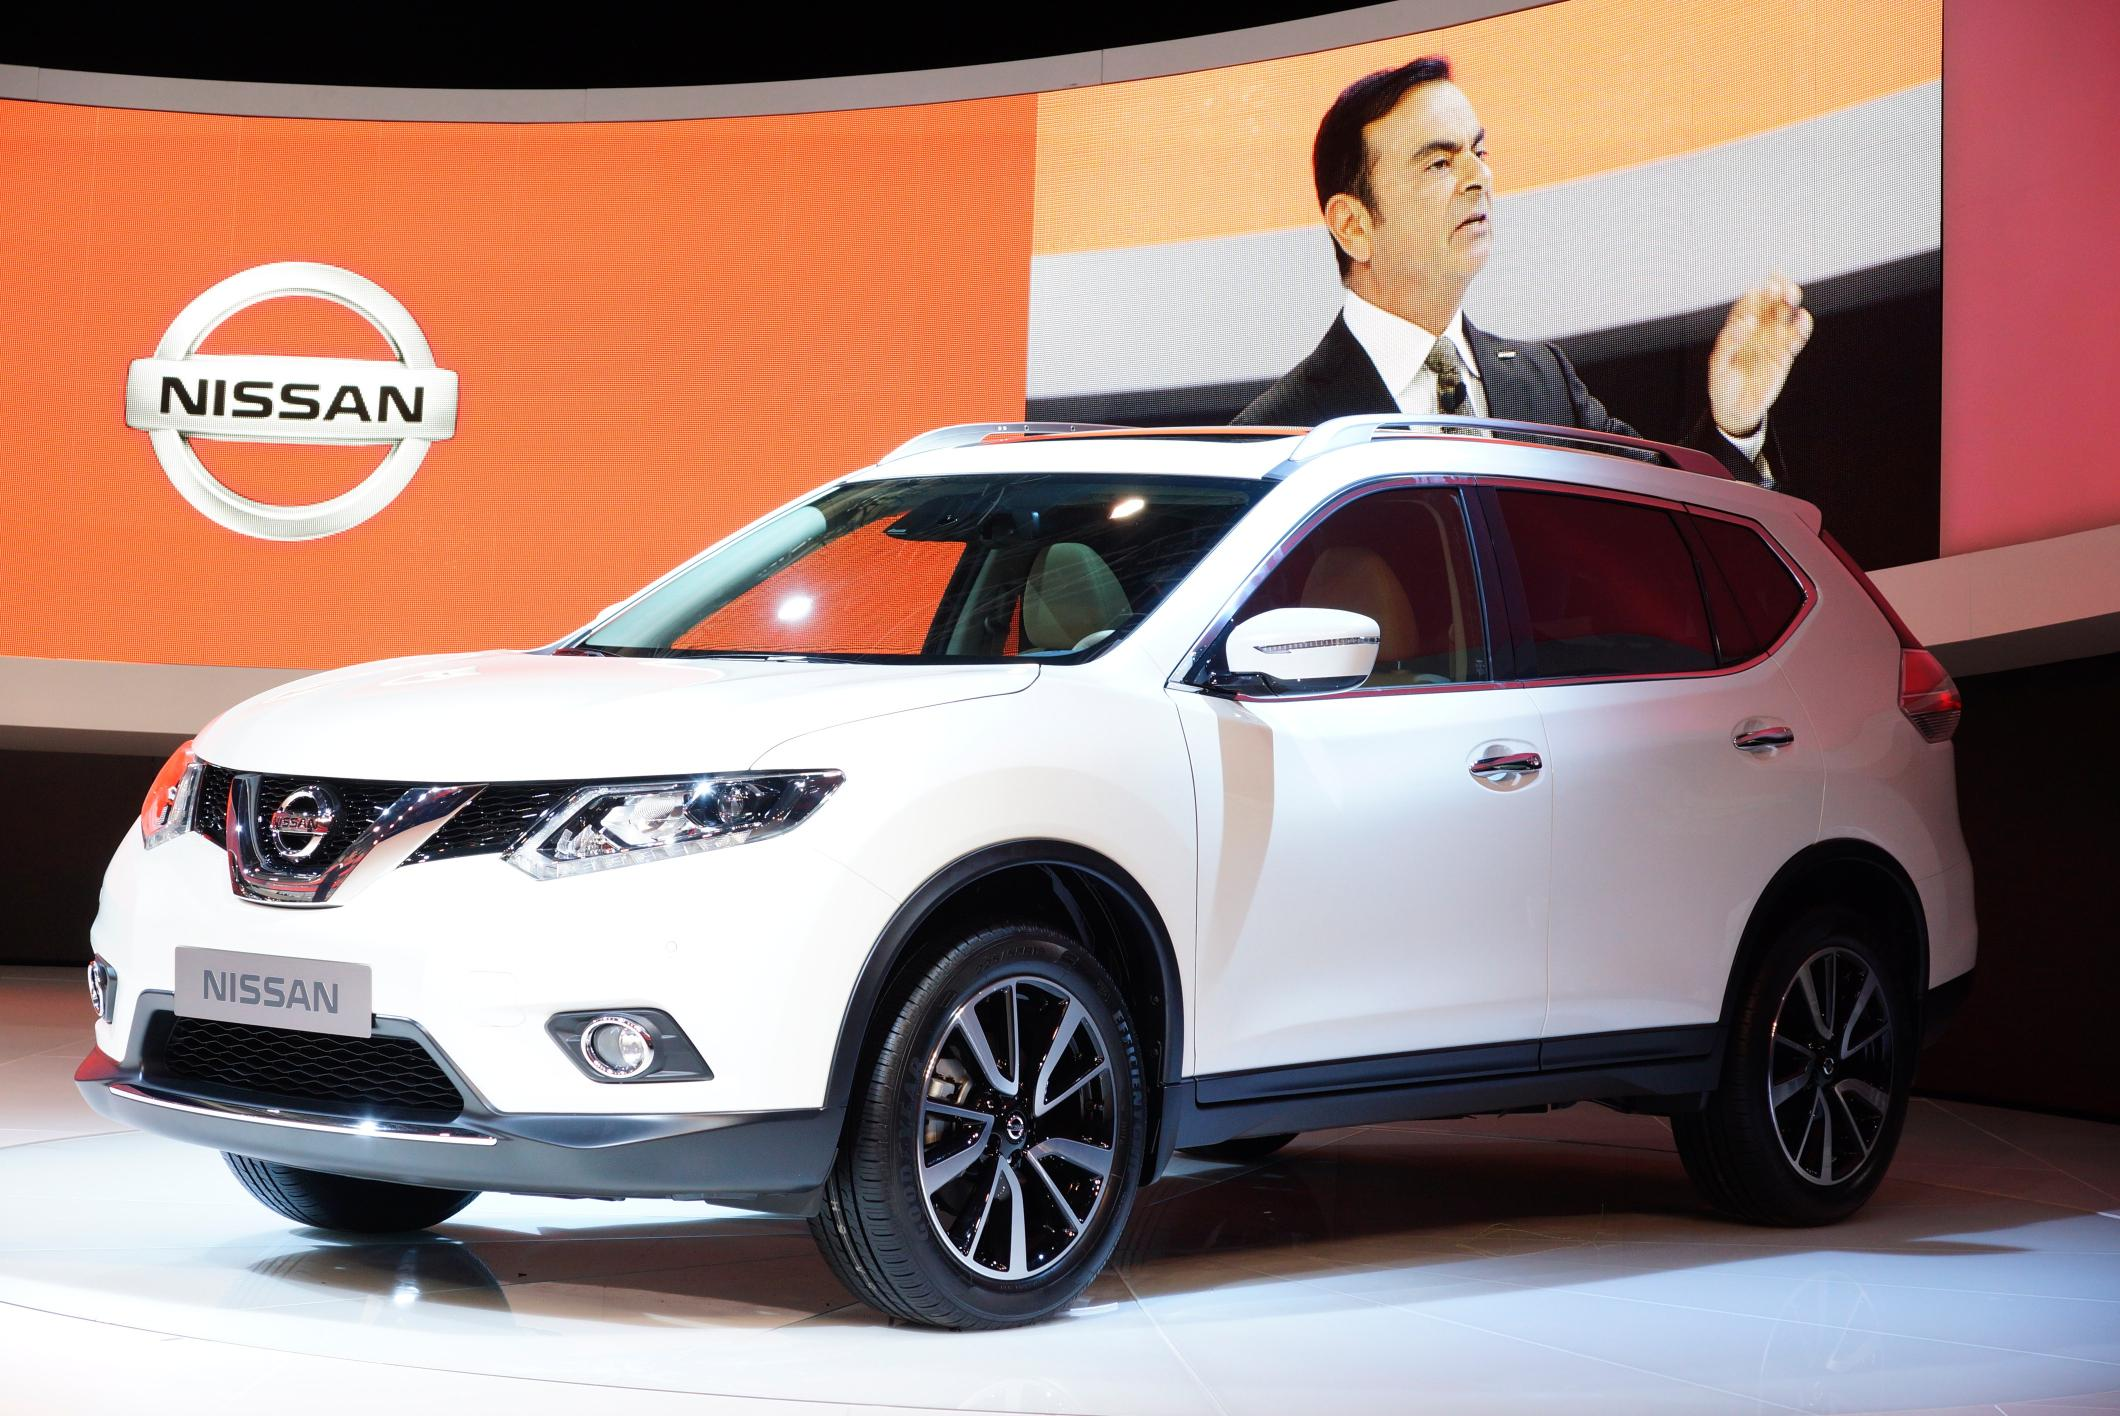 Nissan Murano Price In India >> New Nissan X-Trail SUV price, Photos, specs & India launch